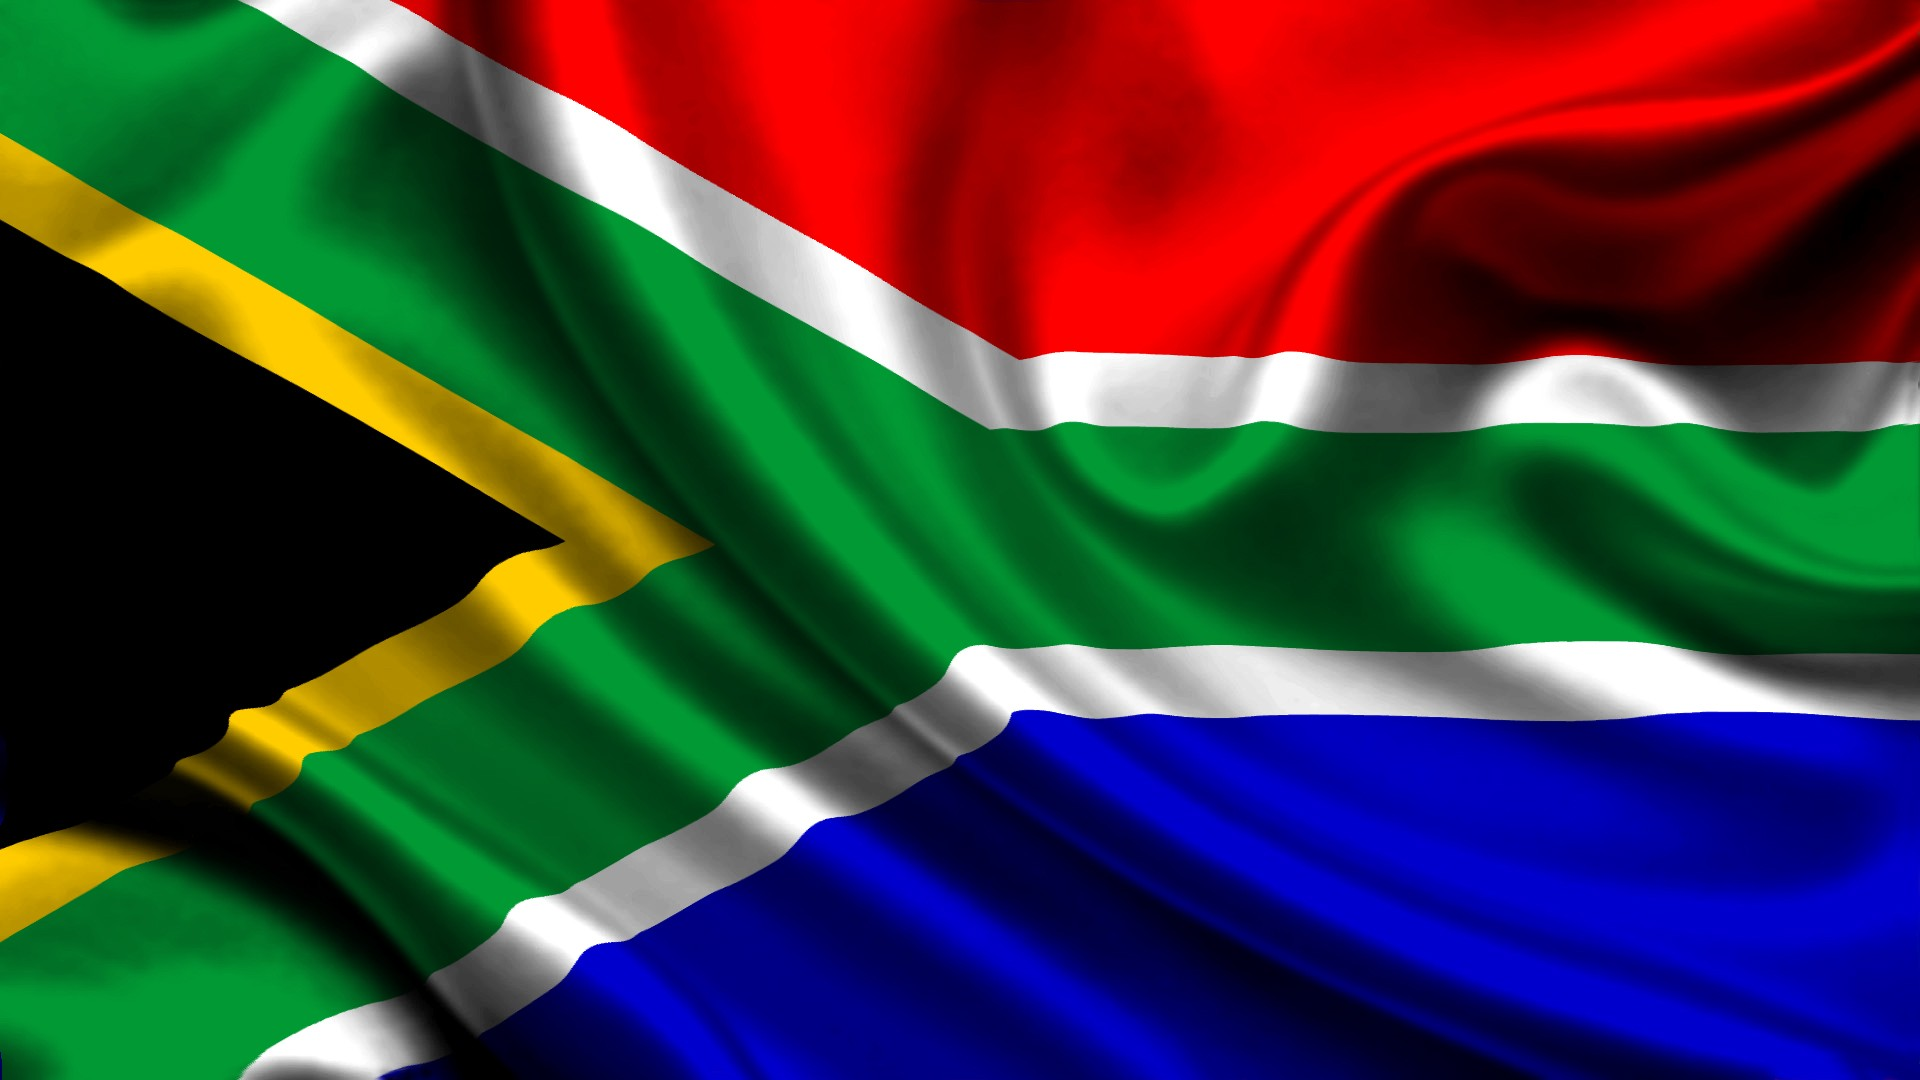 File:Flag of South Africa.svg Wikimedia Commons